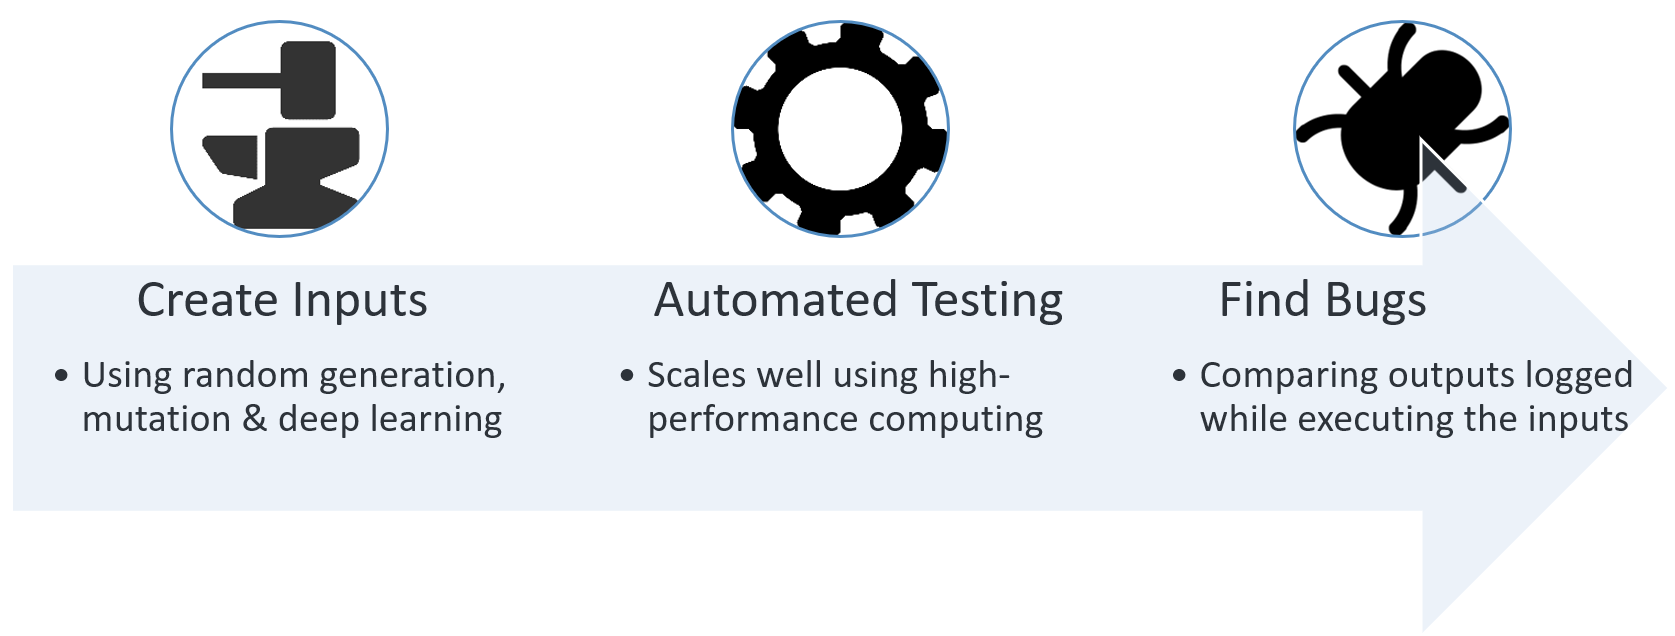 Automated testing schematic diagram